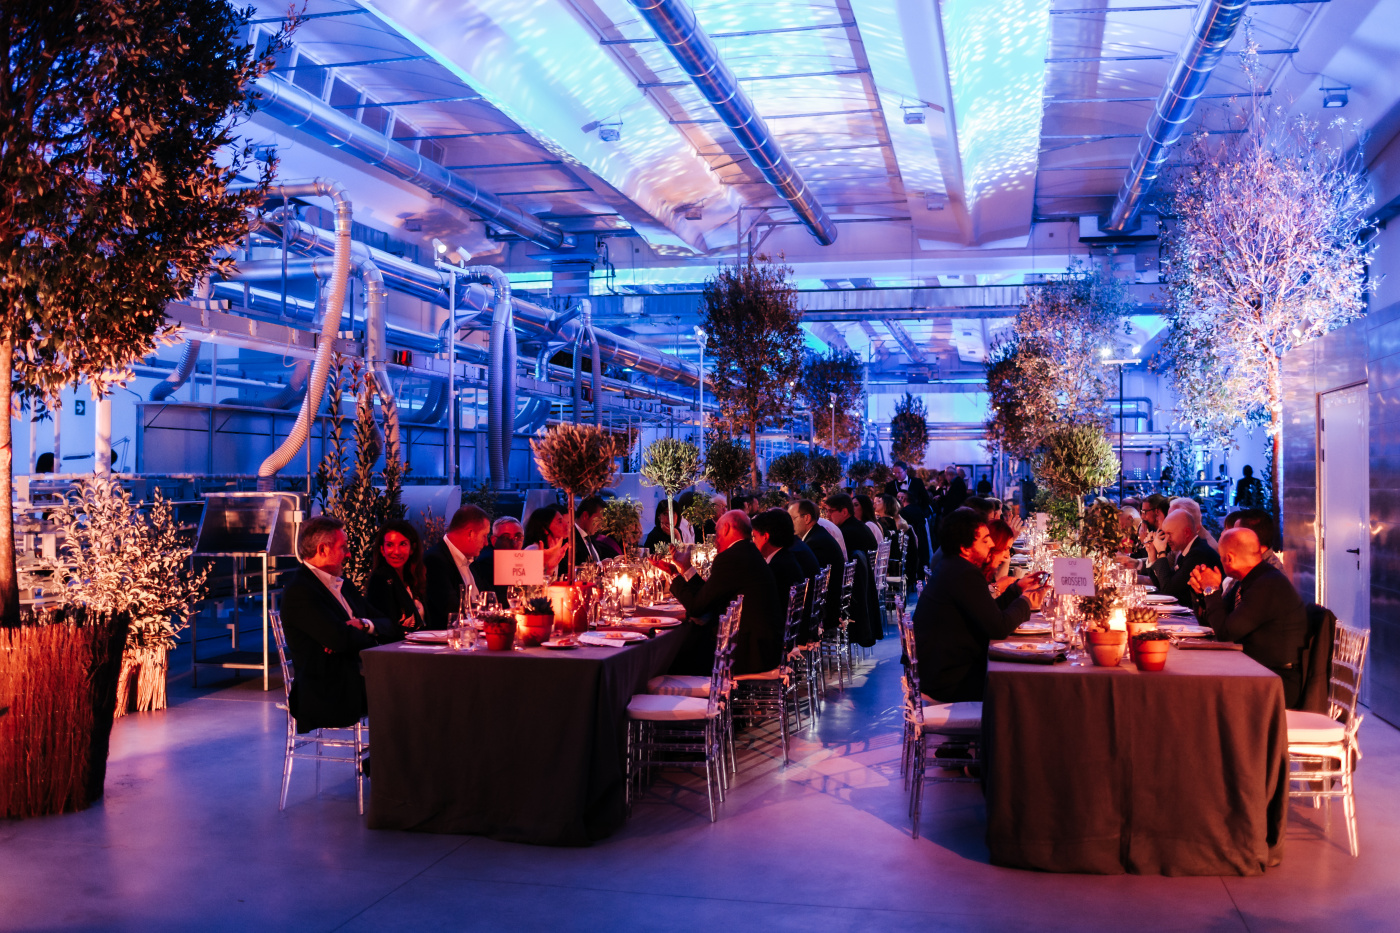 Garden style decor for a corporate event